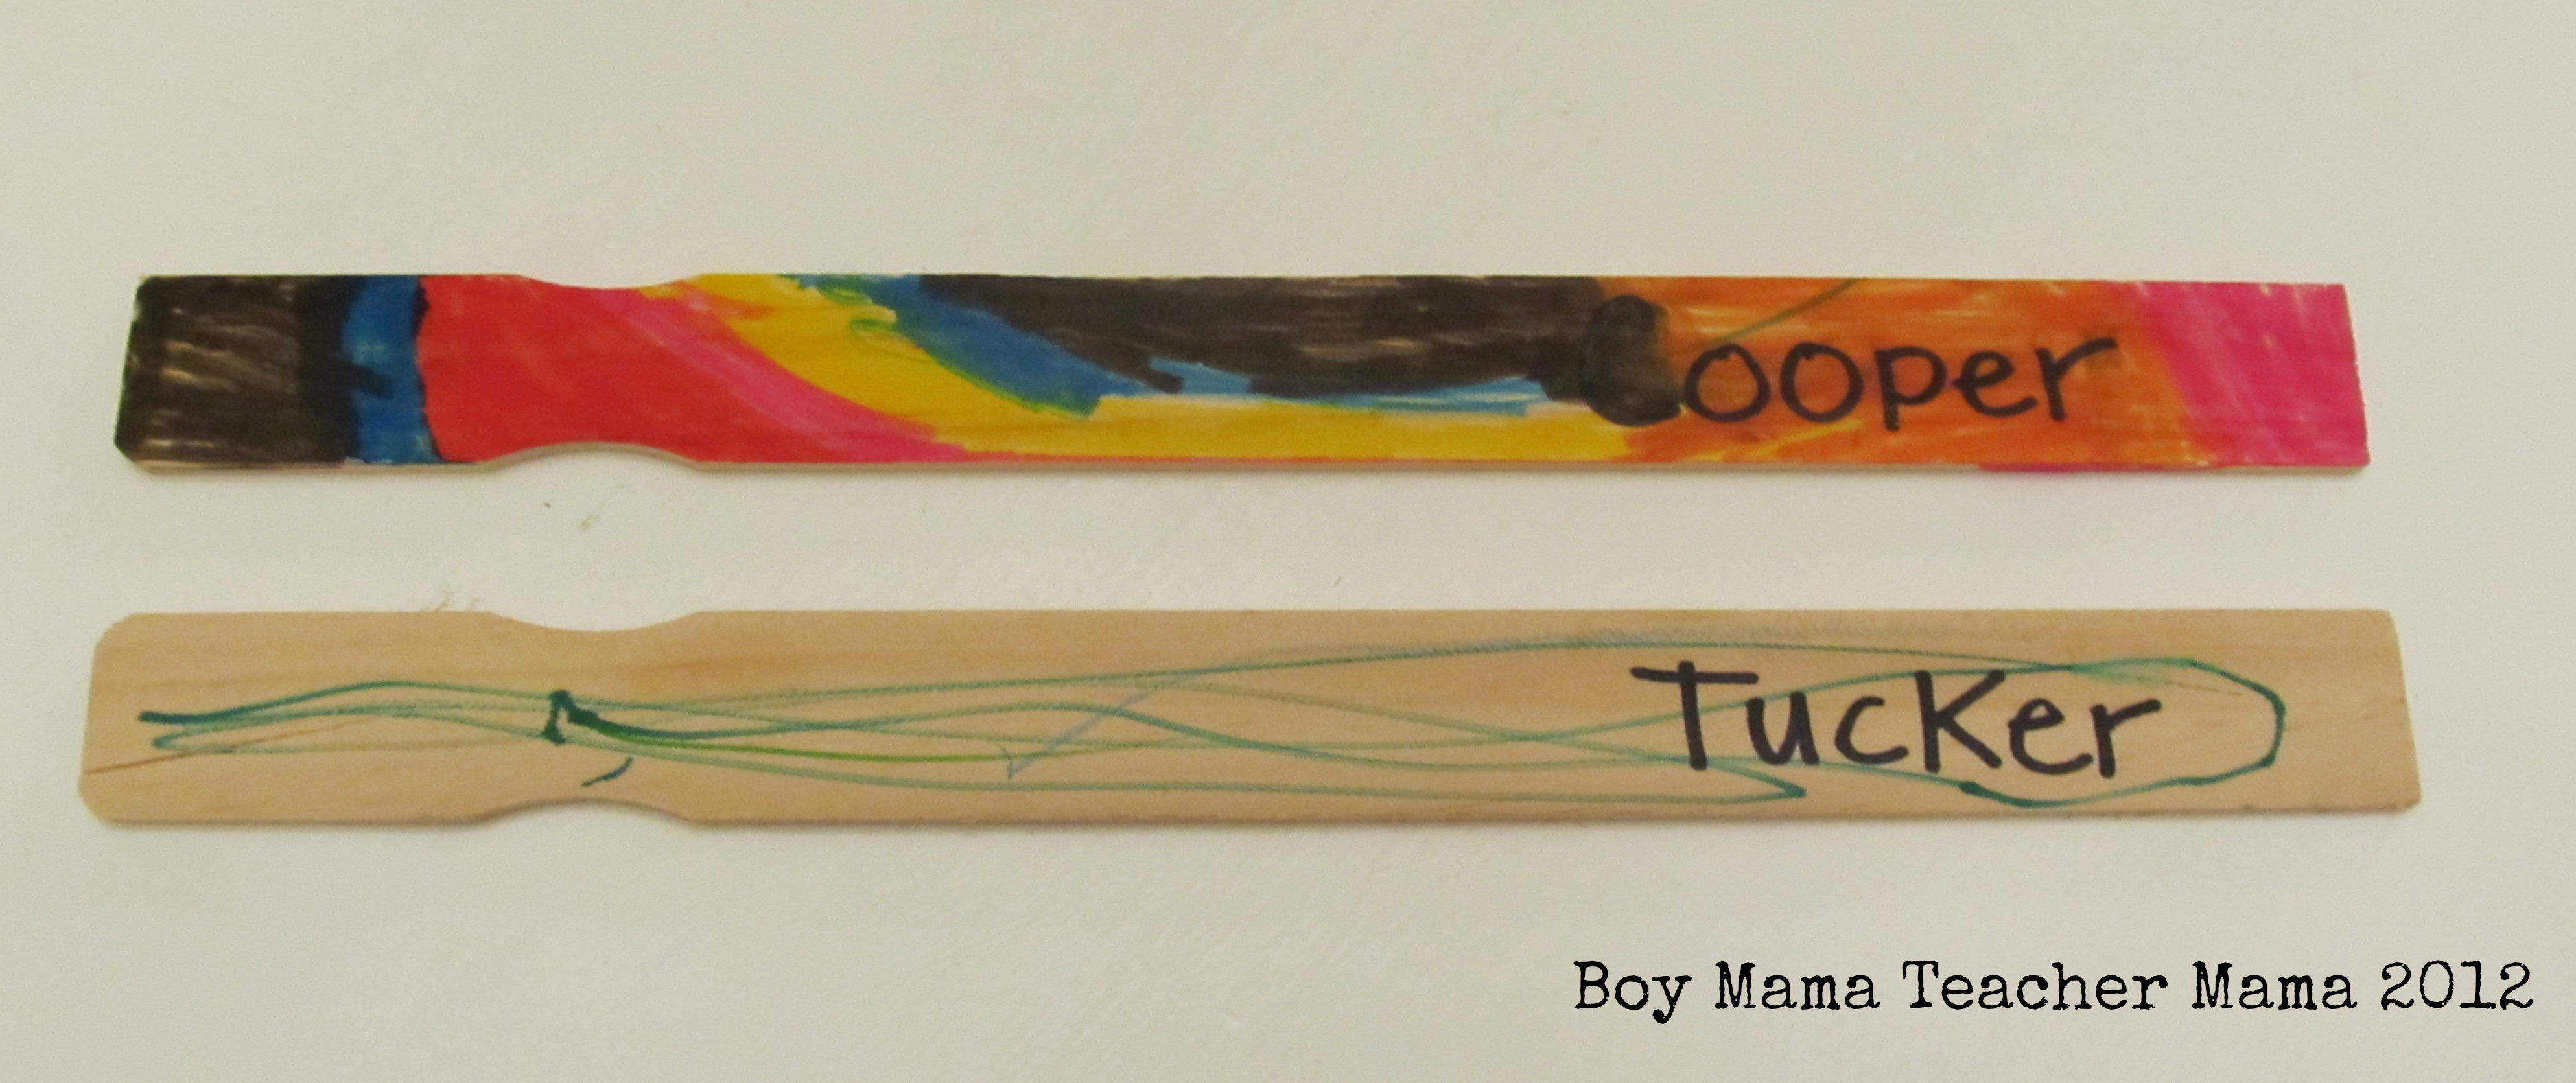 Mama: 7 Uses for Paint Mixing Sticks in the Classroom - Boy Mama ...